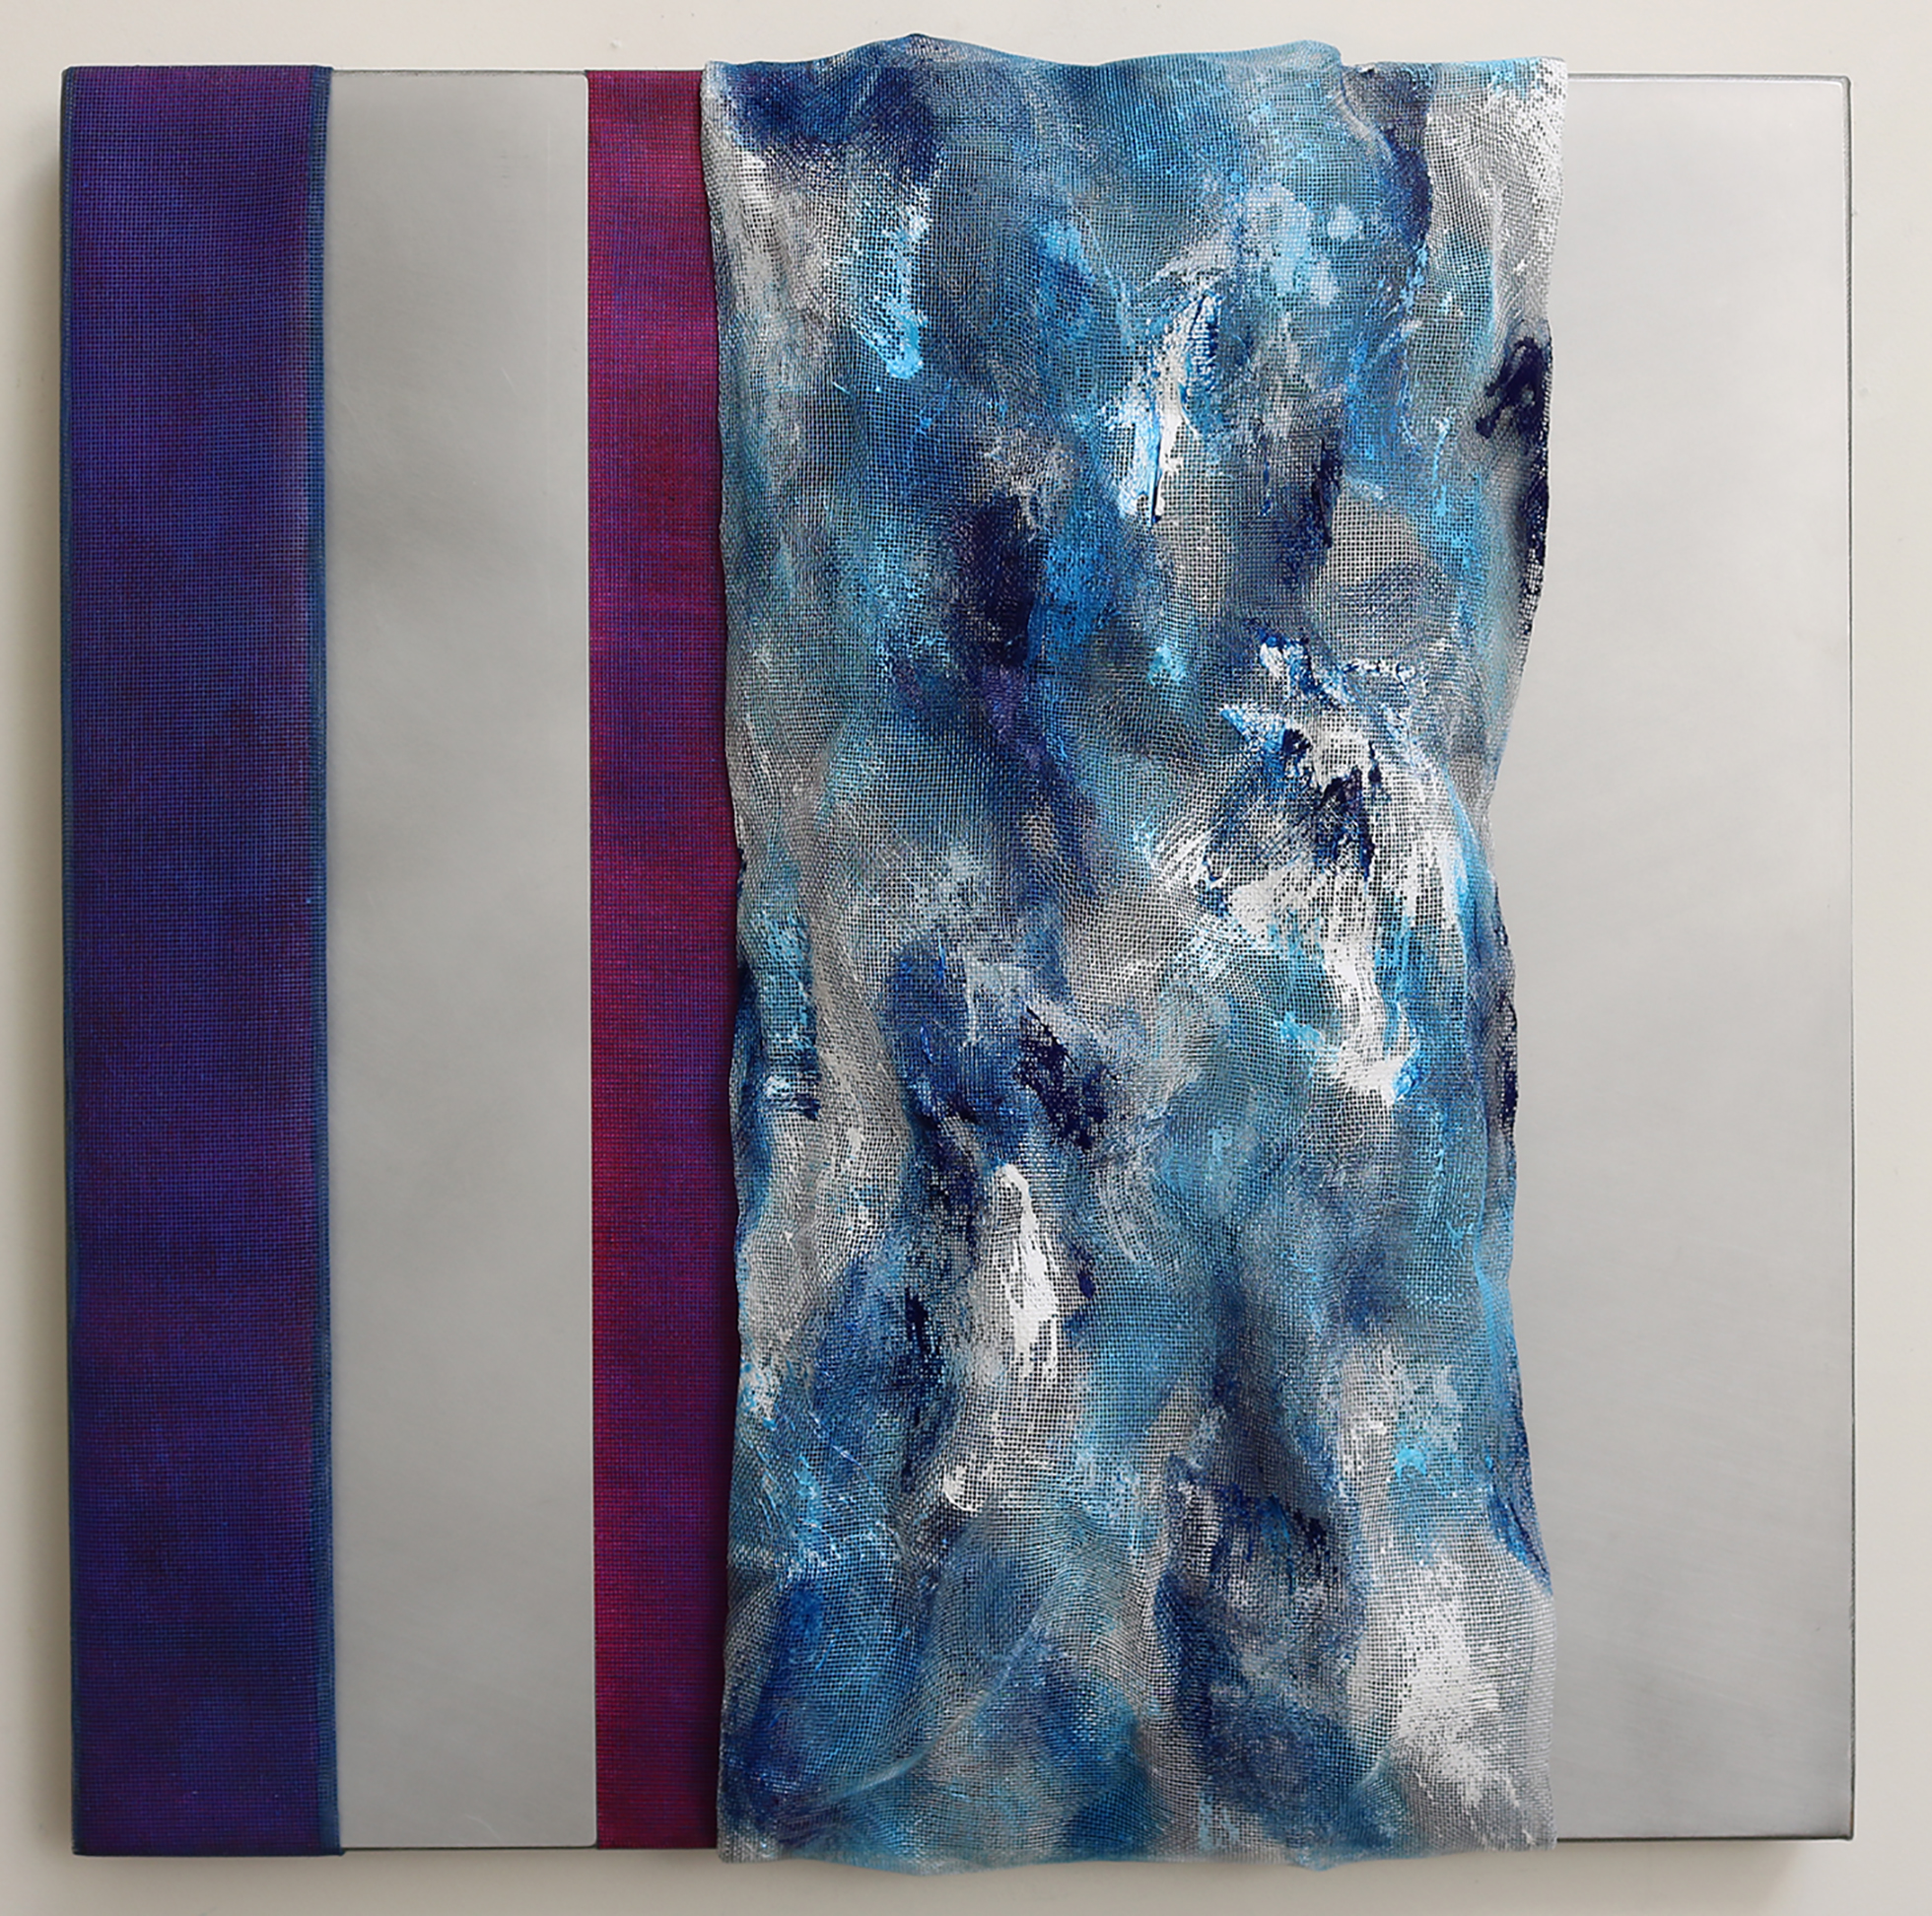 PERKIN'S DELIGHT, 24 x 24 in., finely woven mesh, acrylic on canvas